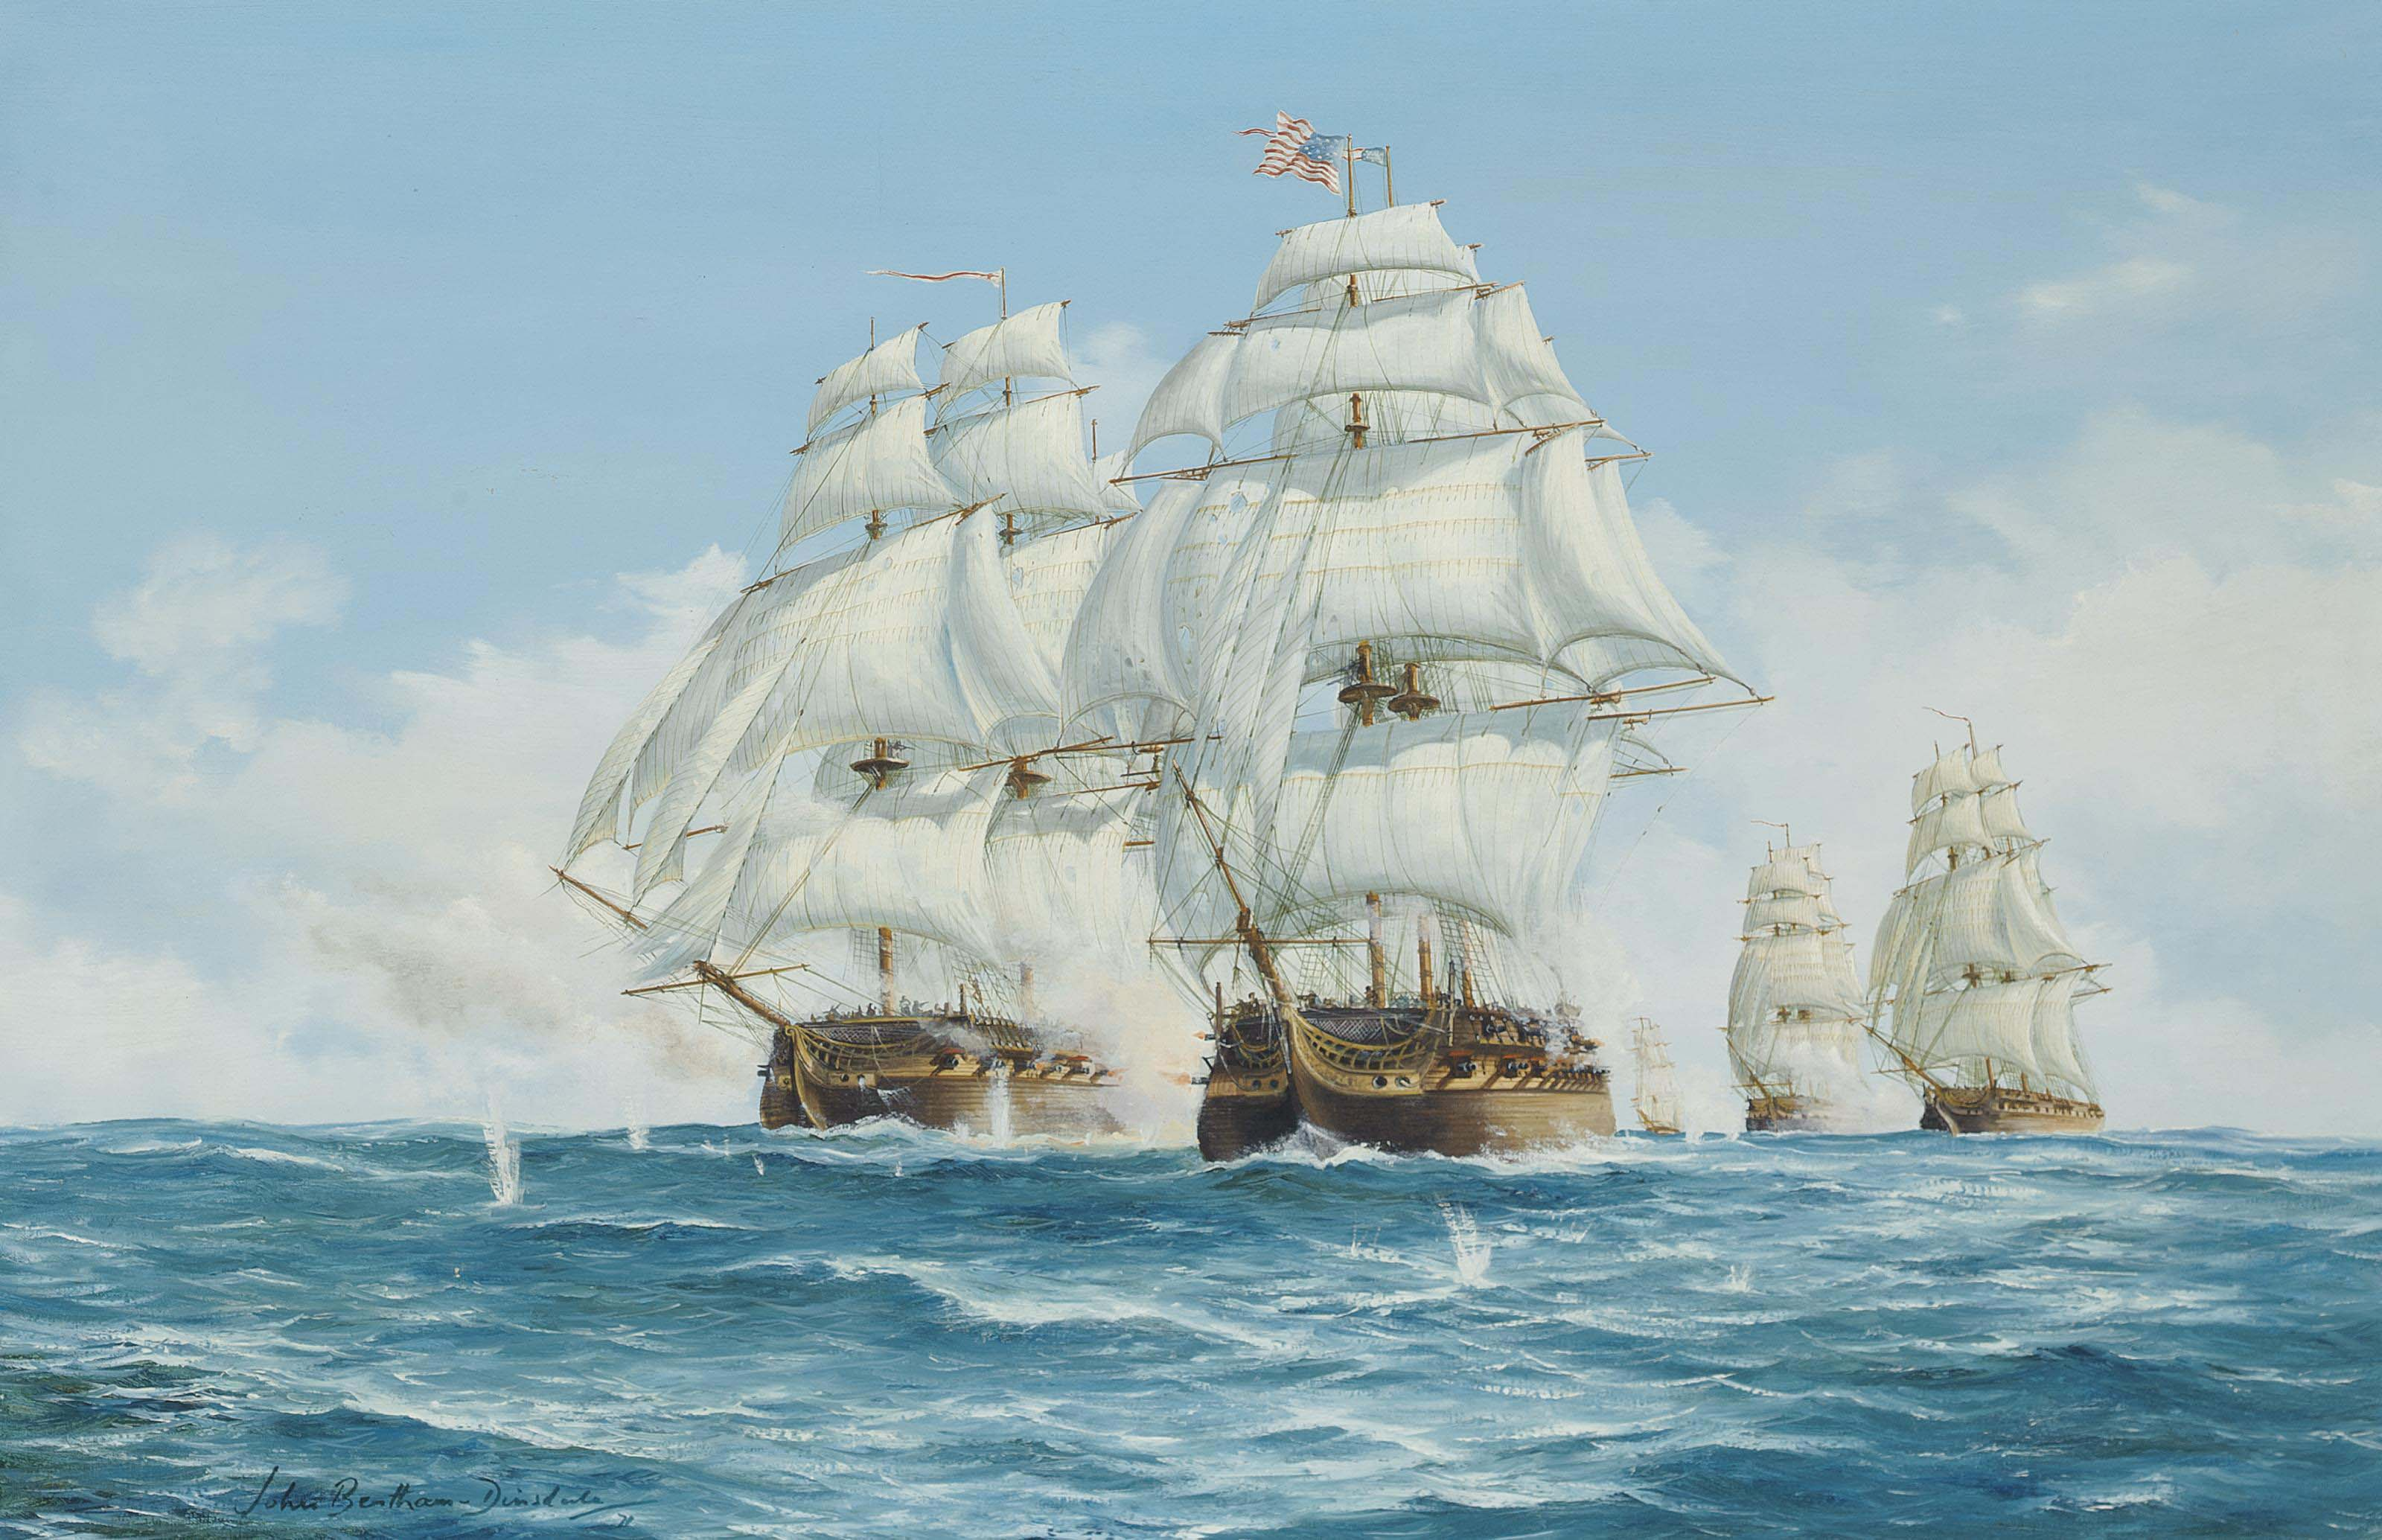 The capture of U.S.S. President off New York, 14th January 1815